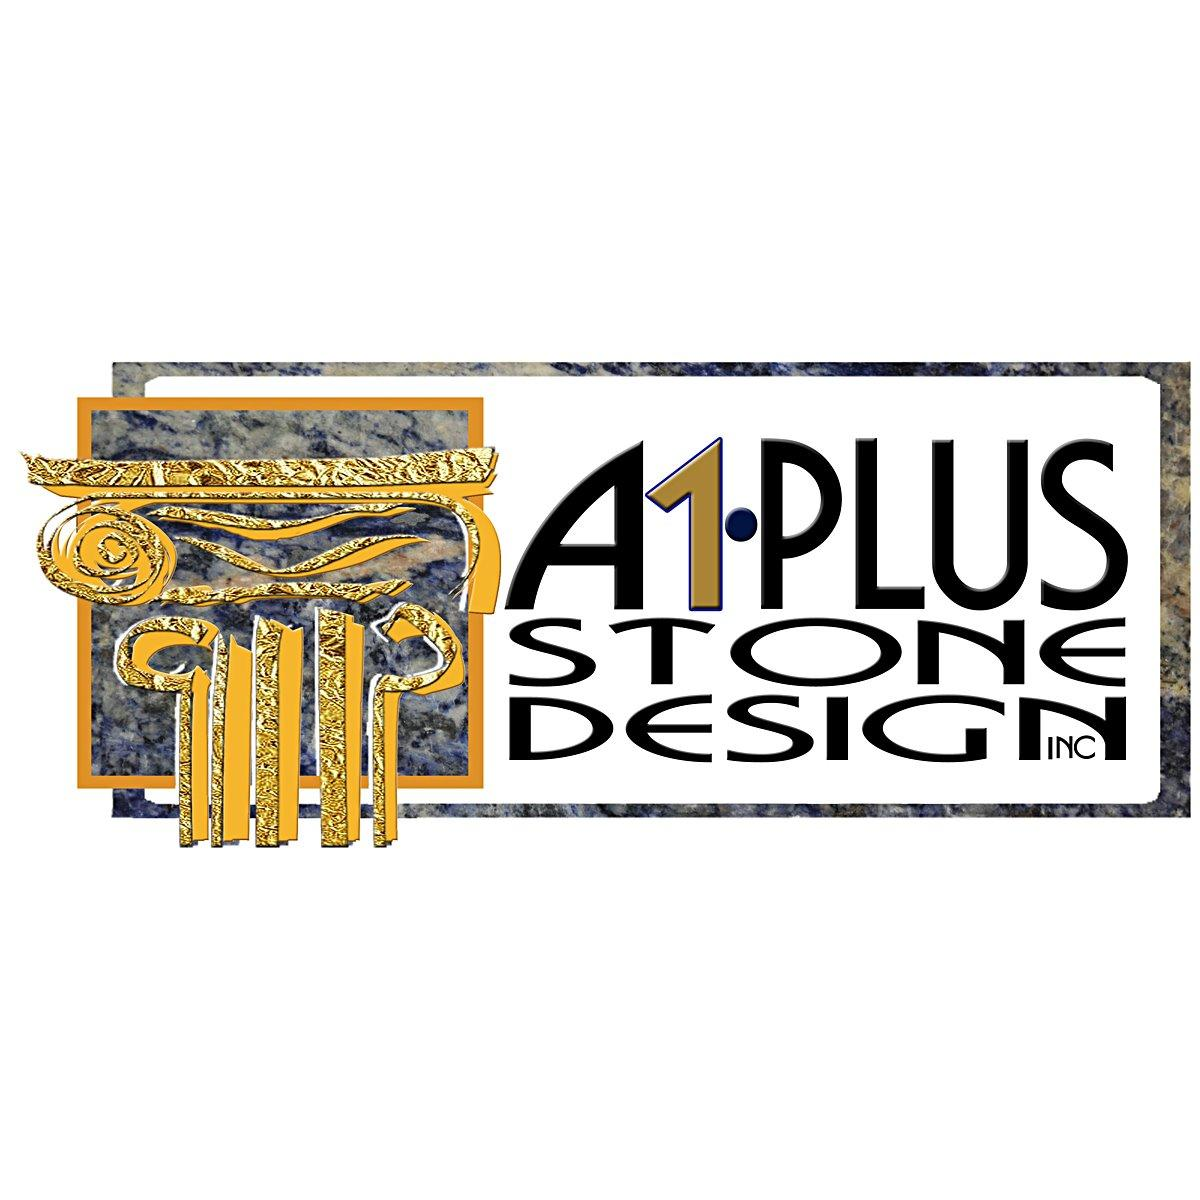 A 1 Plus Stone Design Inc - Lake Worth, FL 33461 - (561)798-4325 | ShowMeLocal.com